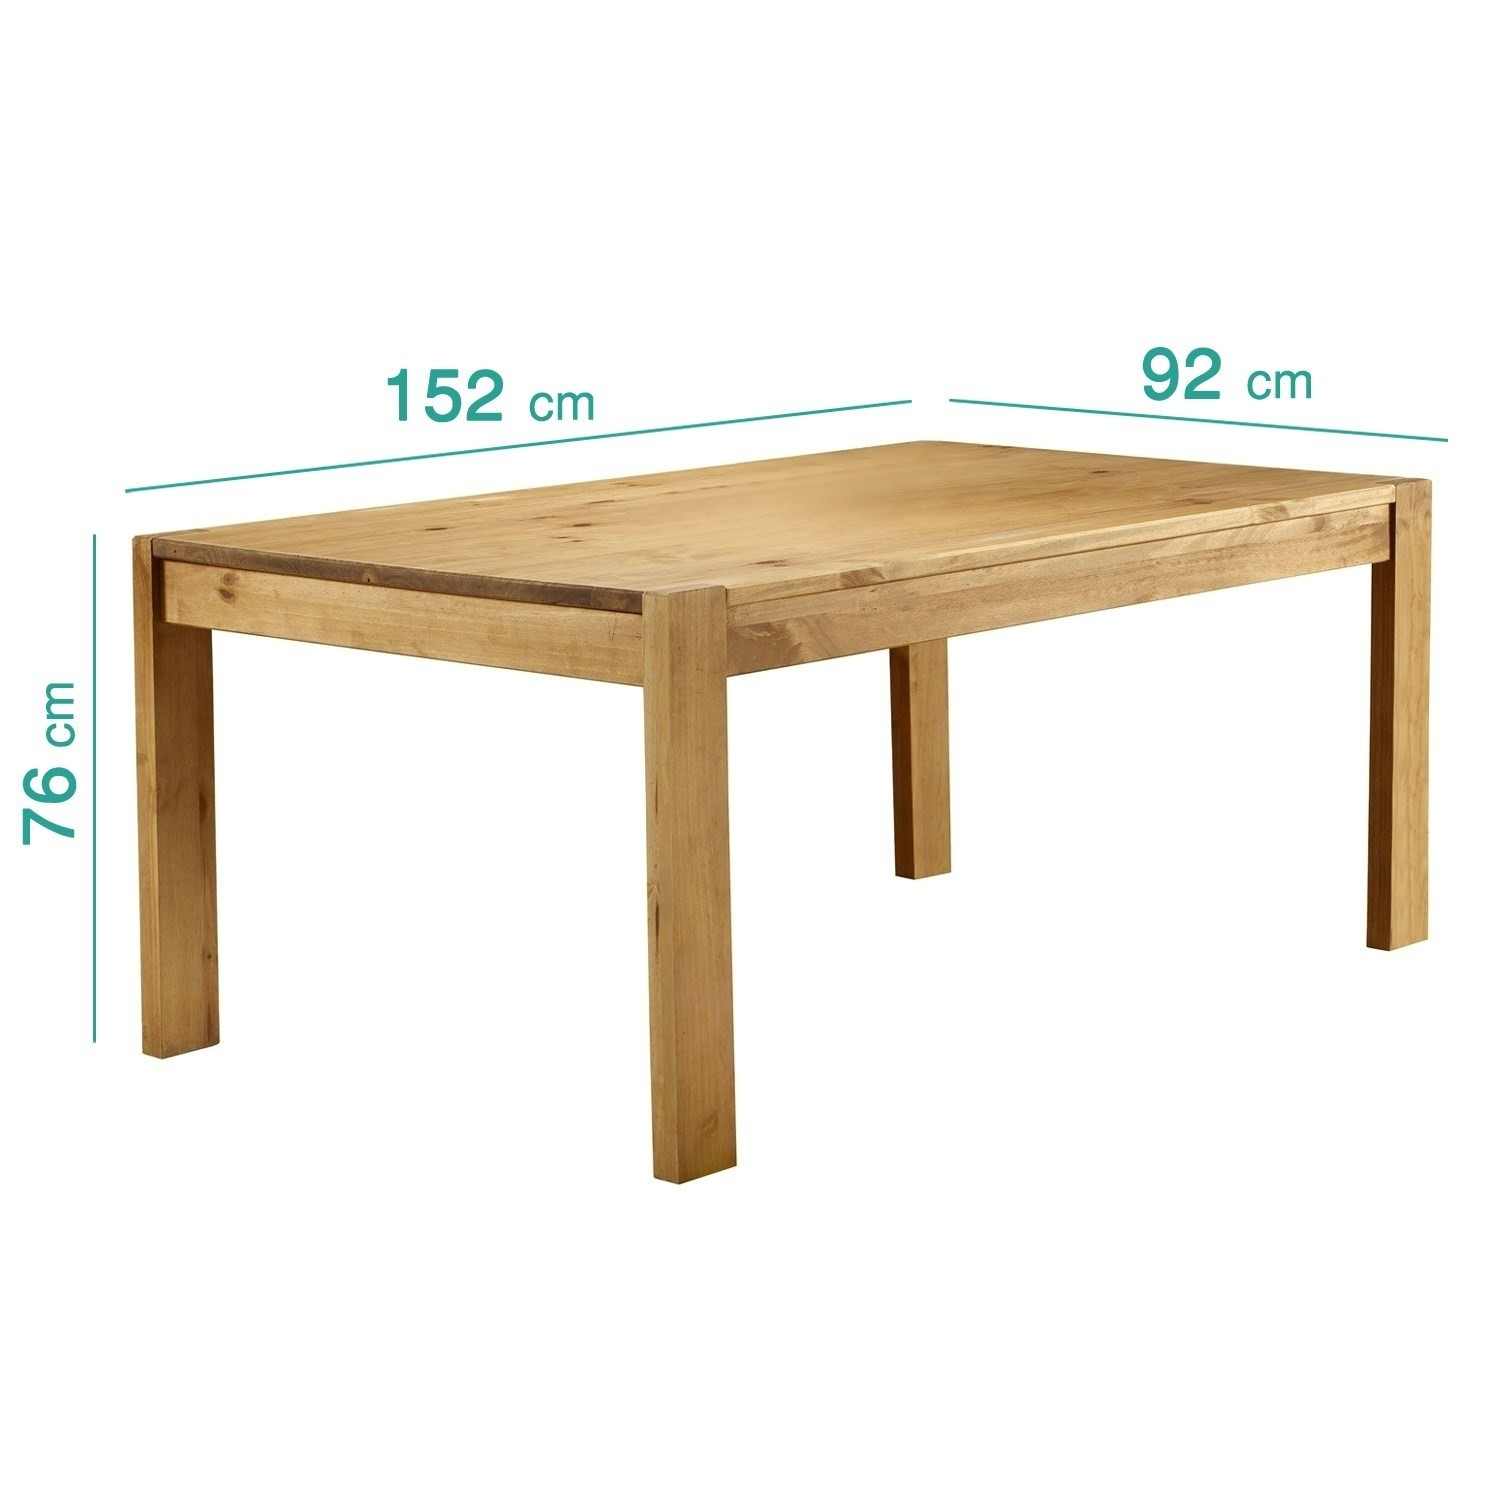 Emerson Solid Pine Kitchen Dining Table Set Includes 2